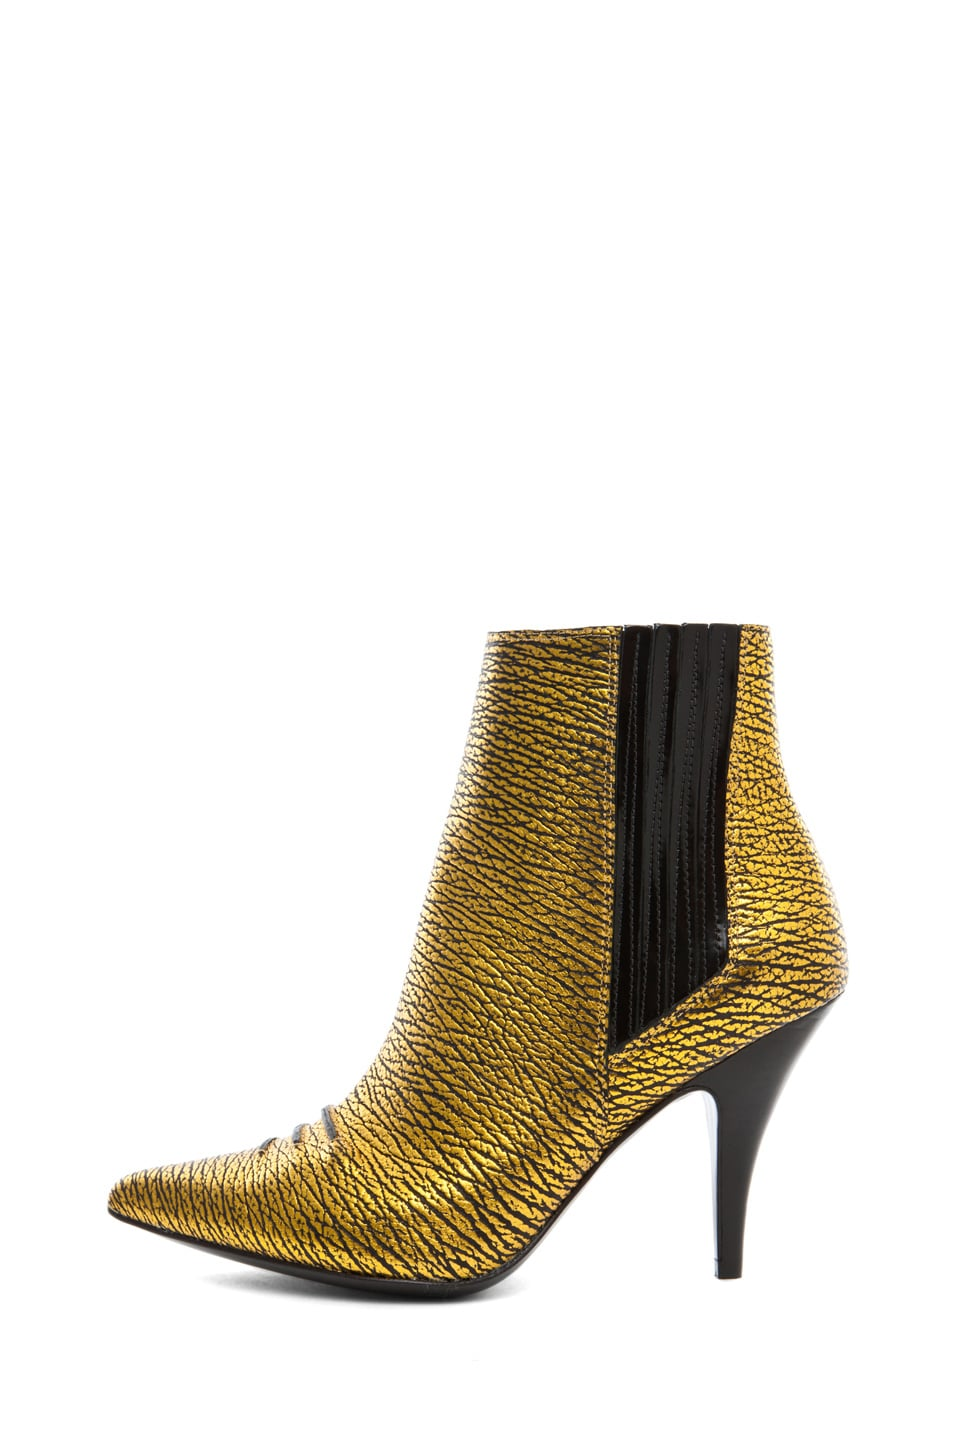 Image 1 of 3.1 phillip lim Delia Bootie in Yellow Gold